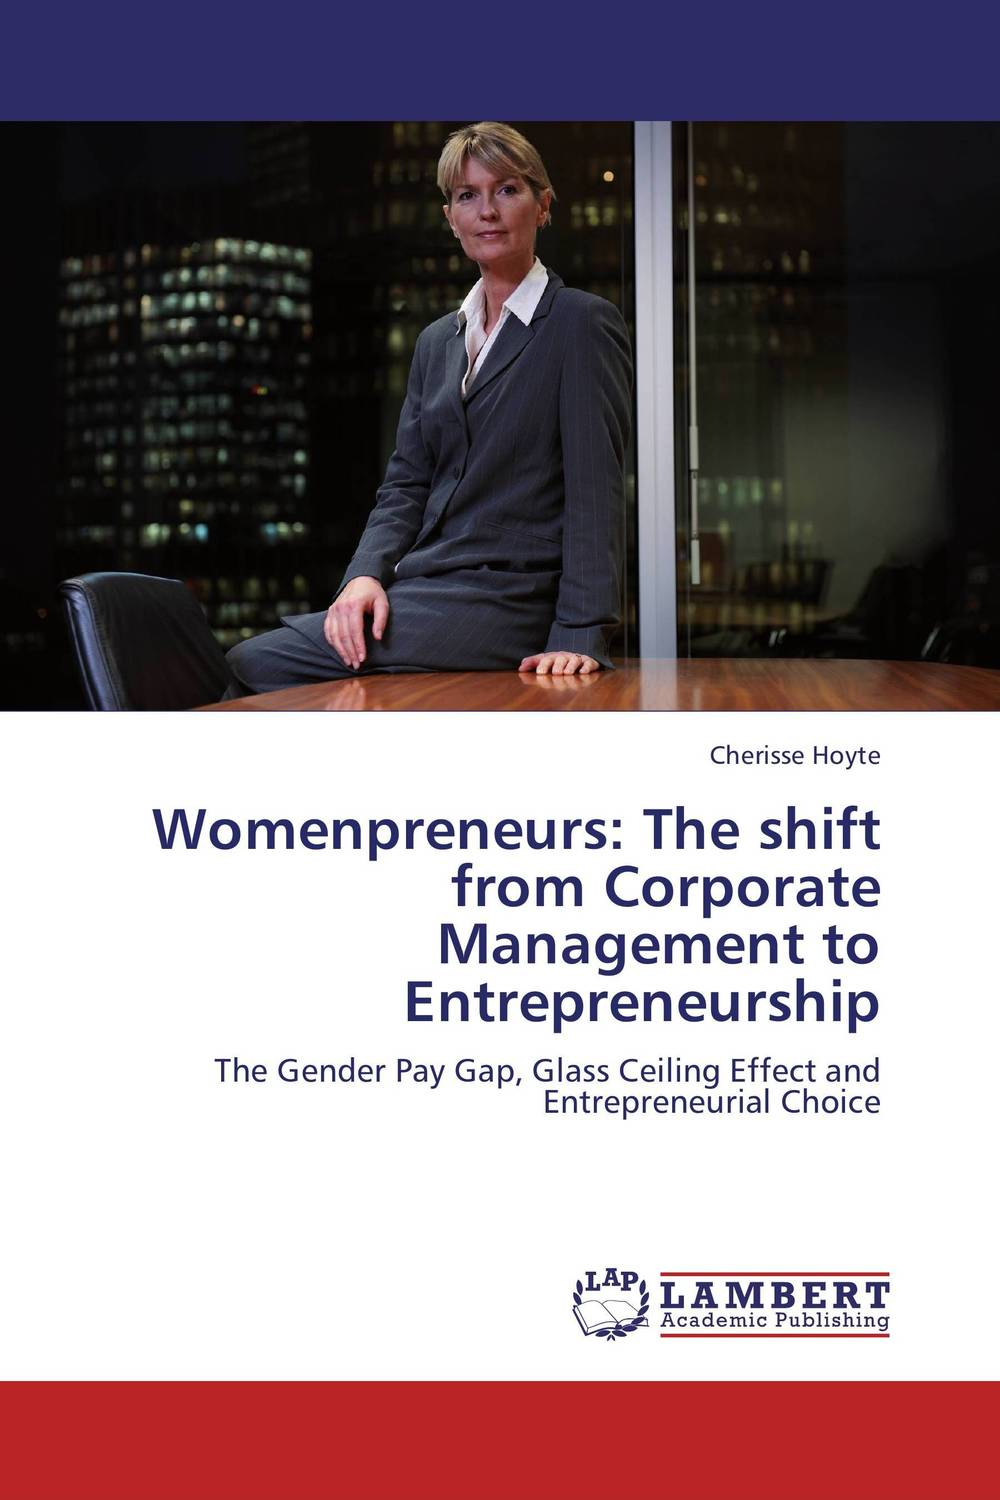 Womenpreneurs: The shift from Corporate Management to Entrepreneurship entrepreneurship career ladder or a startup